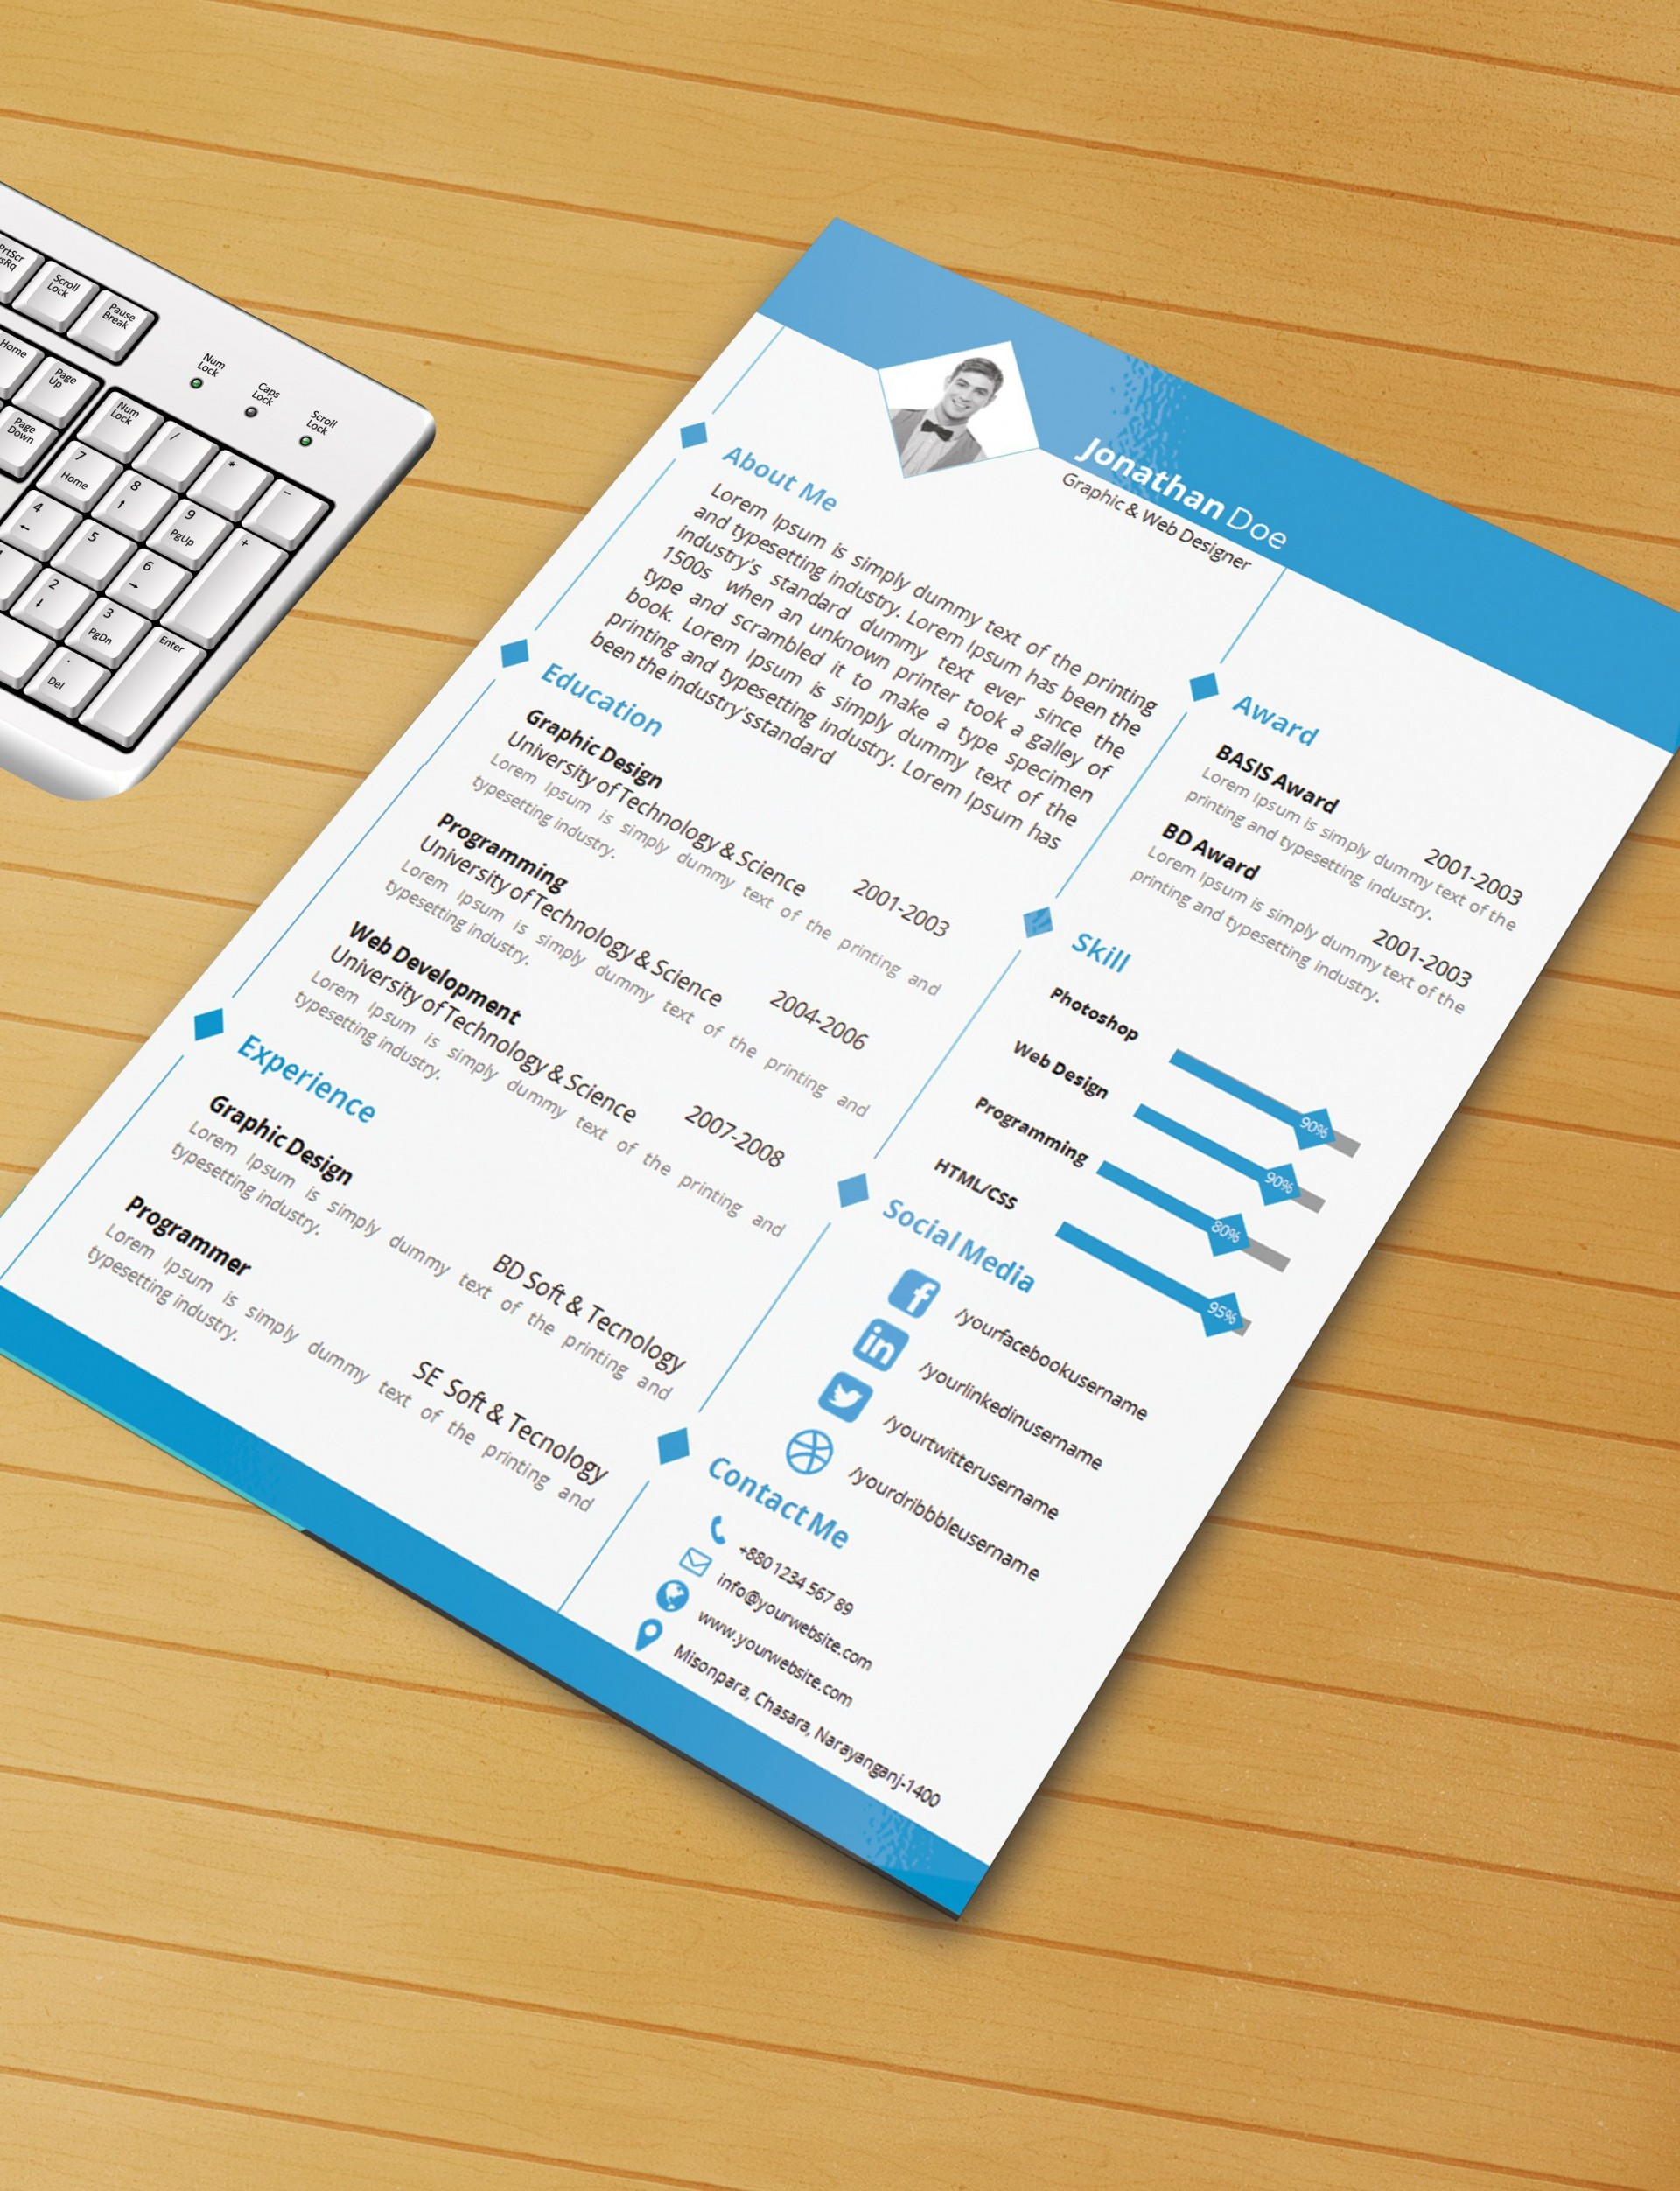 002 Frightening M Word Template Free Download Example  Microsoft Office Invoice Letterhead 2003 Resume1920